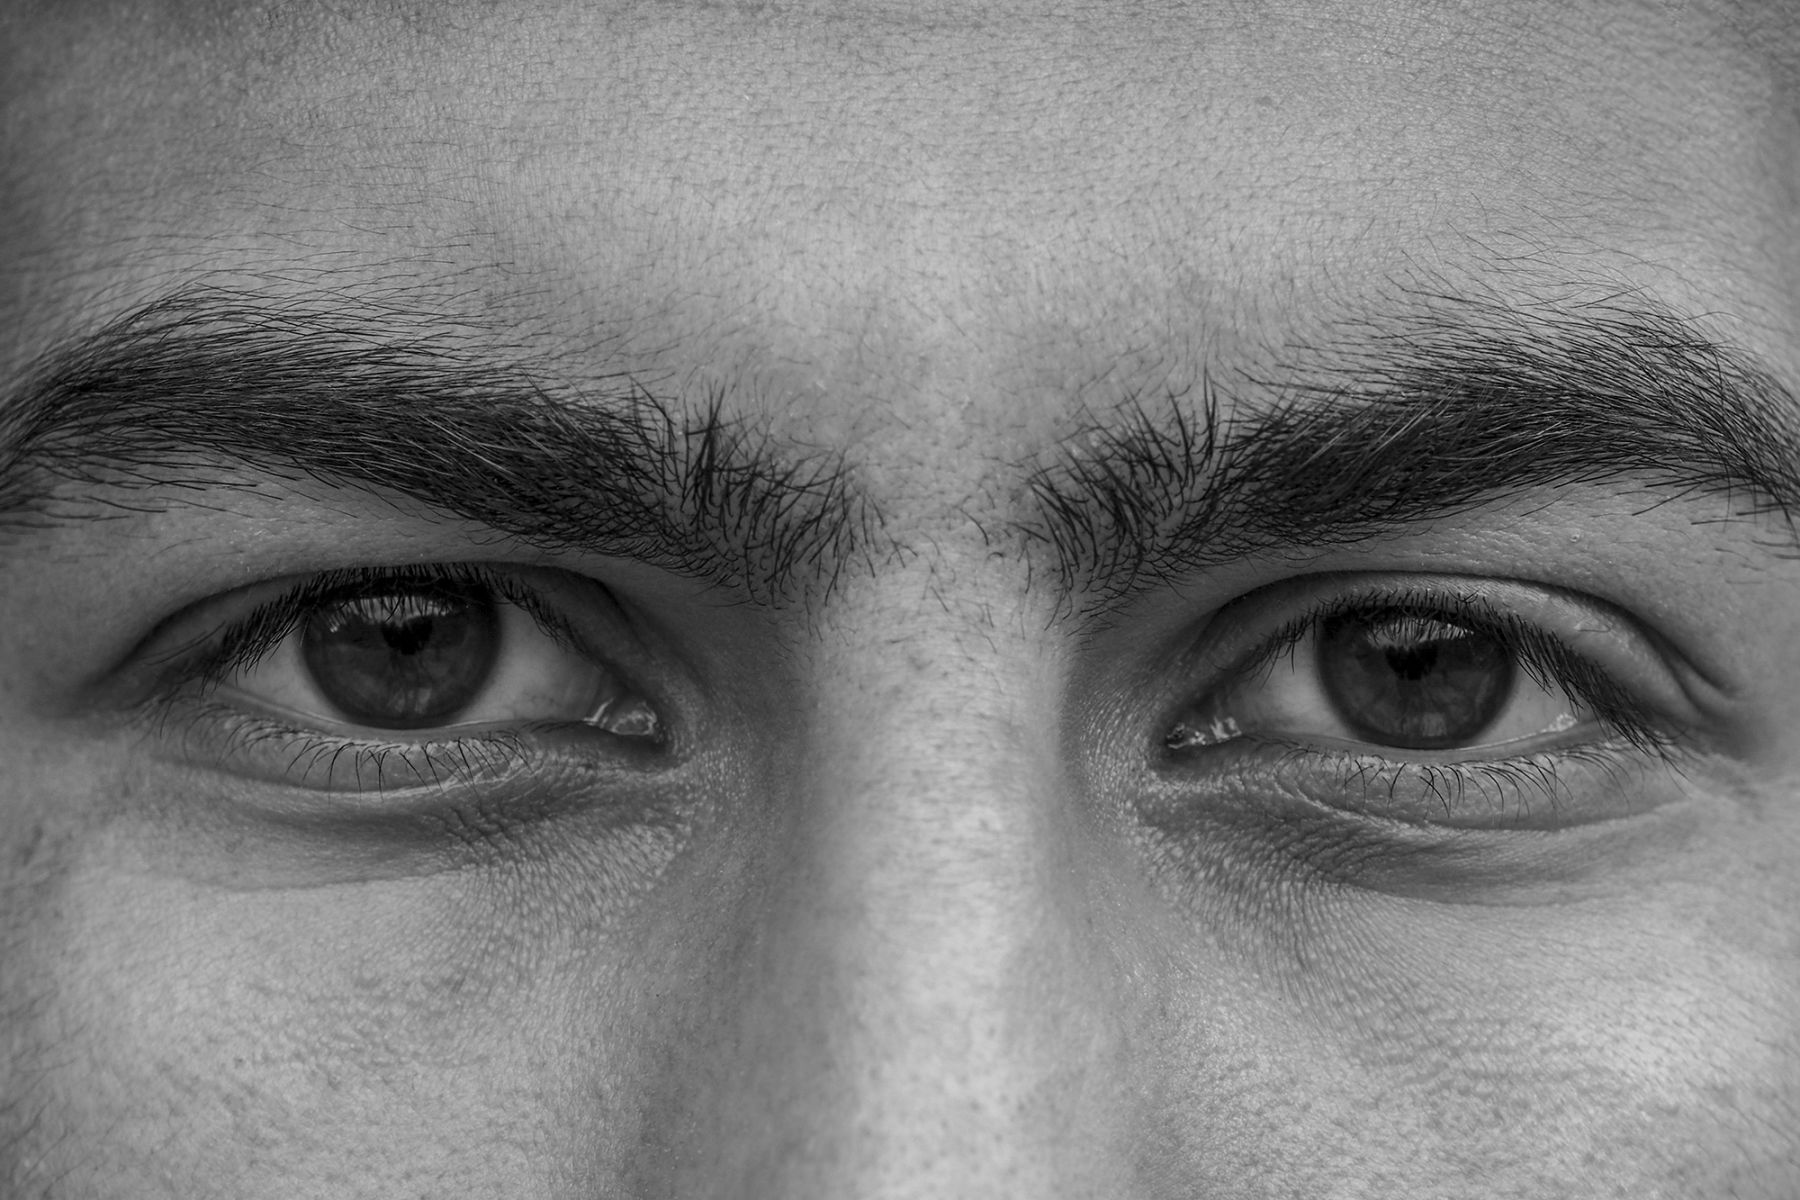 Afghan Eyes - Exhibit - Oslo -2018